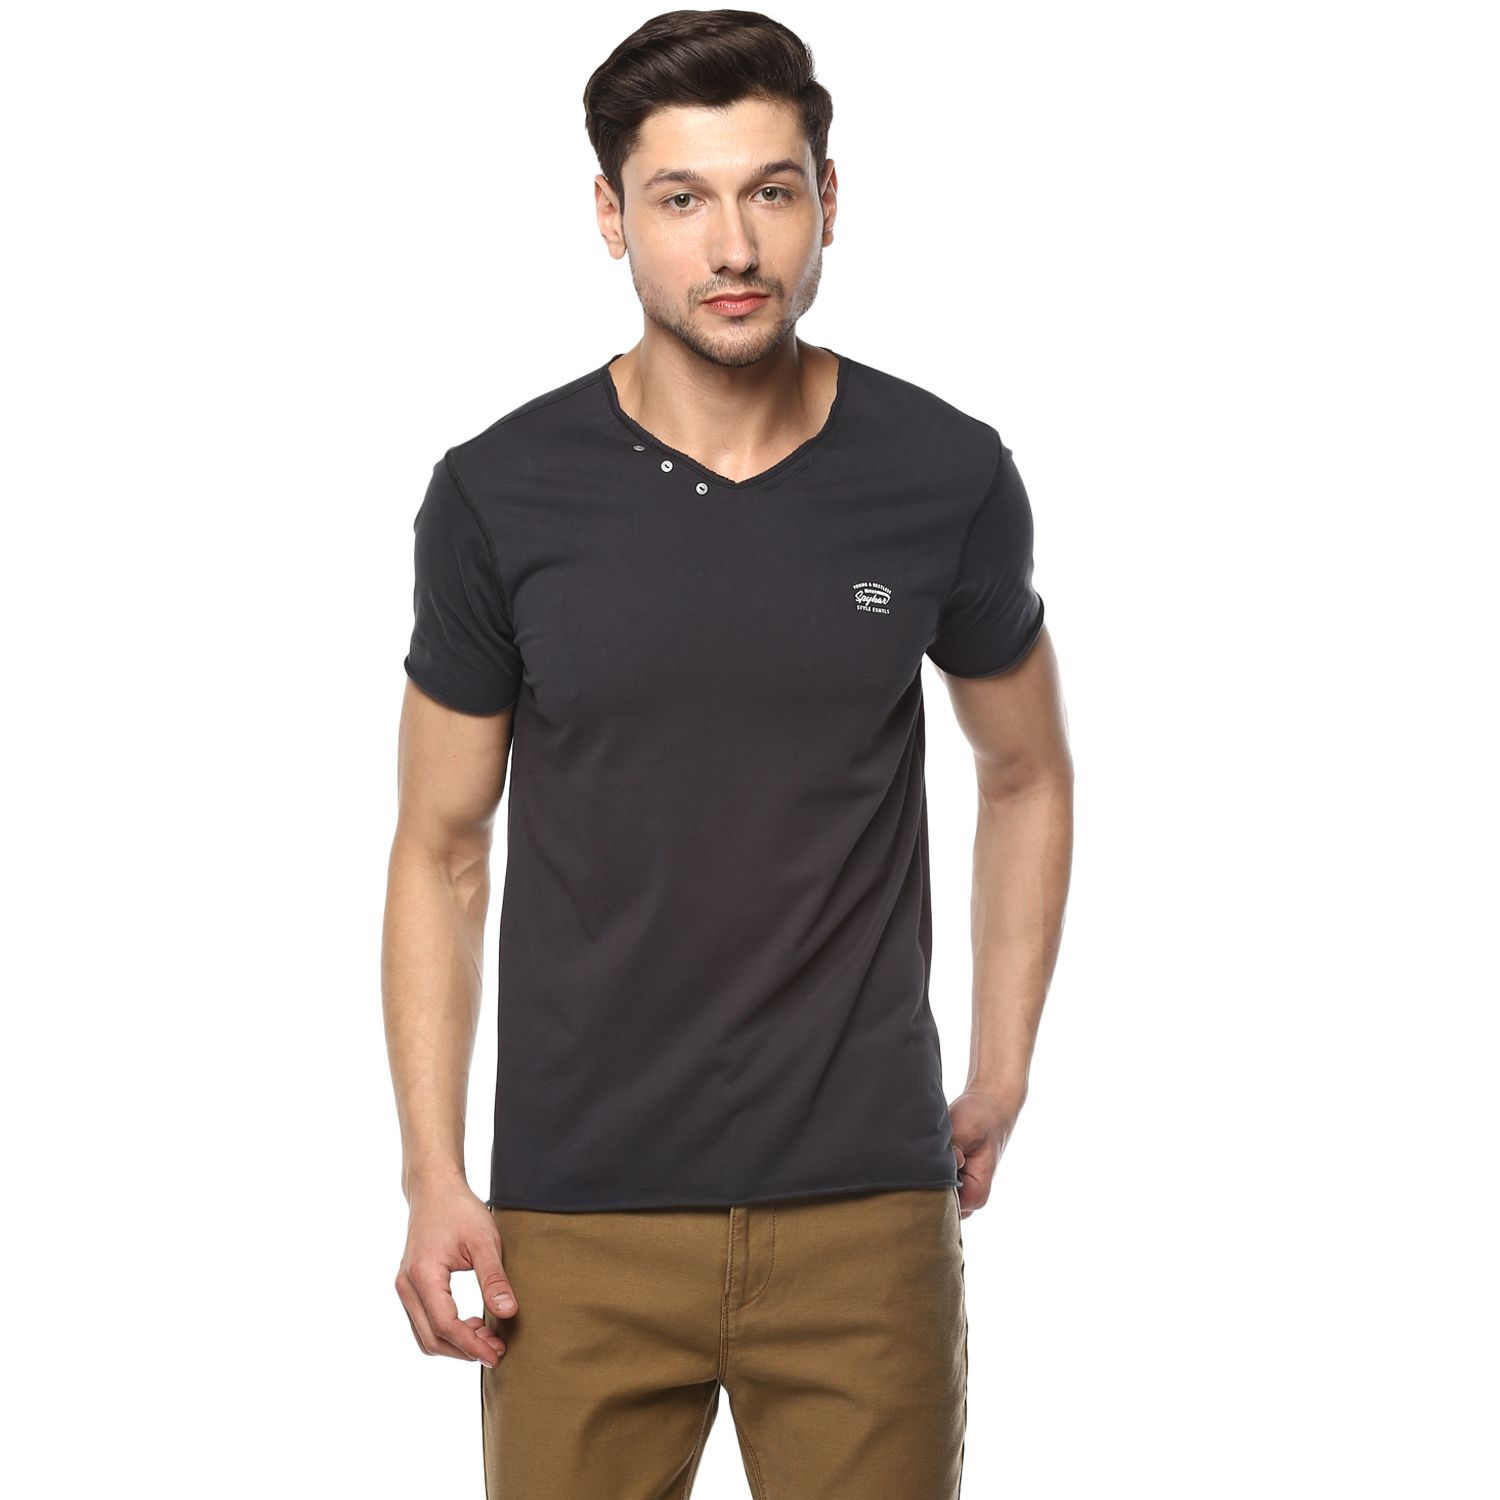 Spykar Black V-Neck T-Shirt